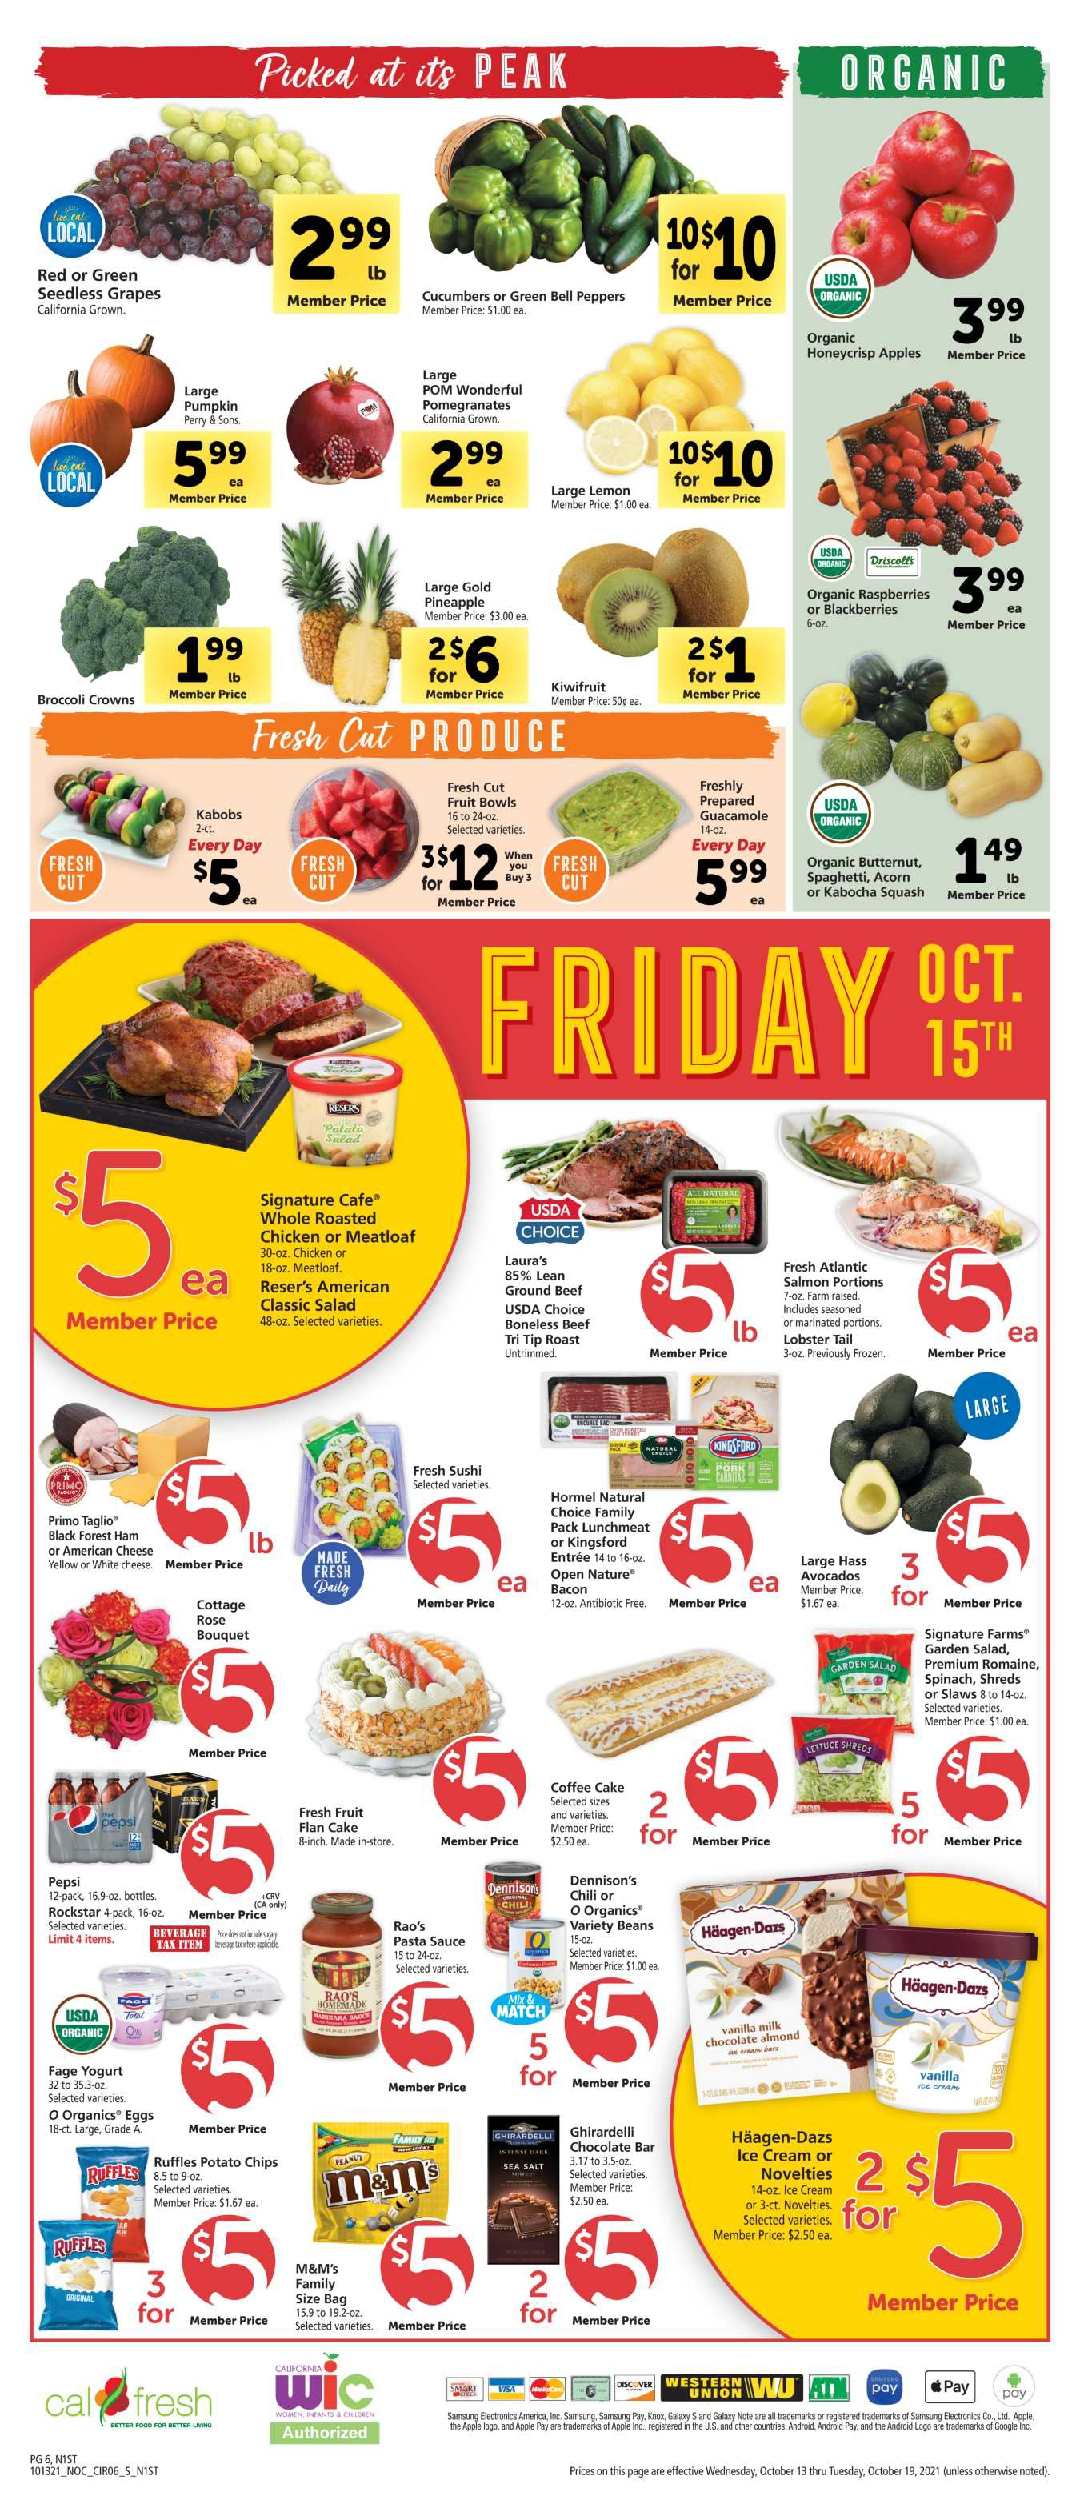 Safeway $5 Friday Ad October 8th, 2021 Weekend Deals Preview